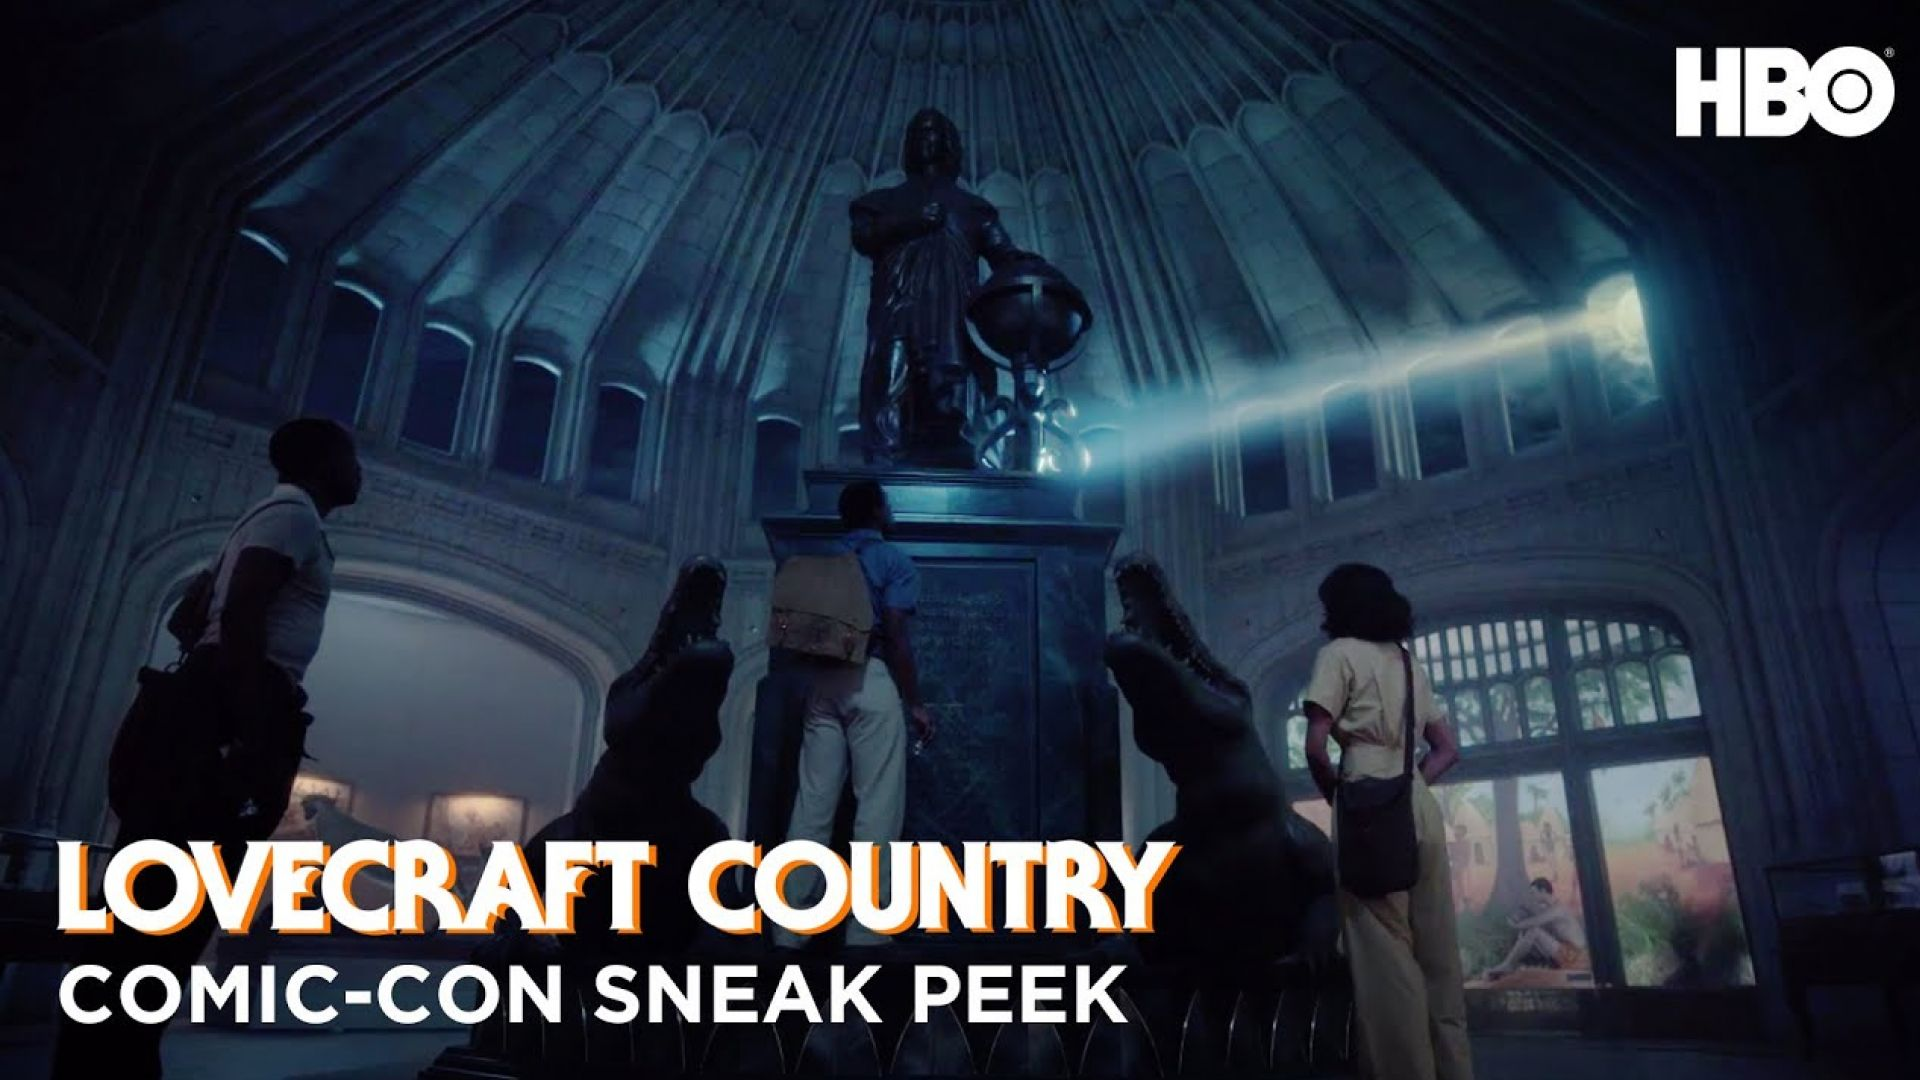 'Lovecraft Country' Sneak Preview